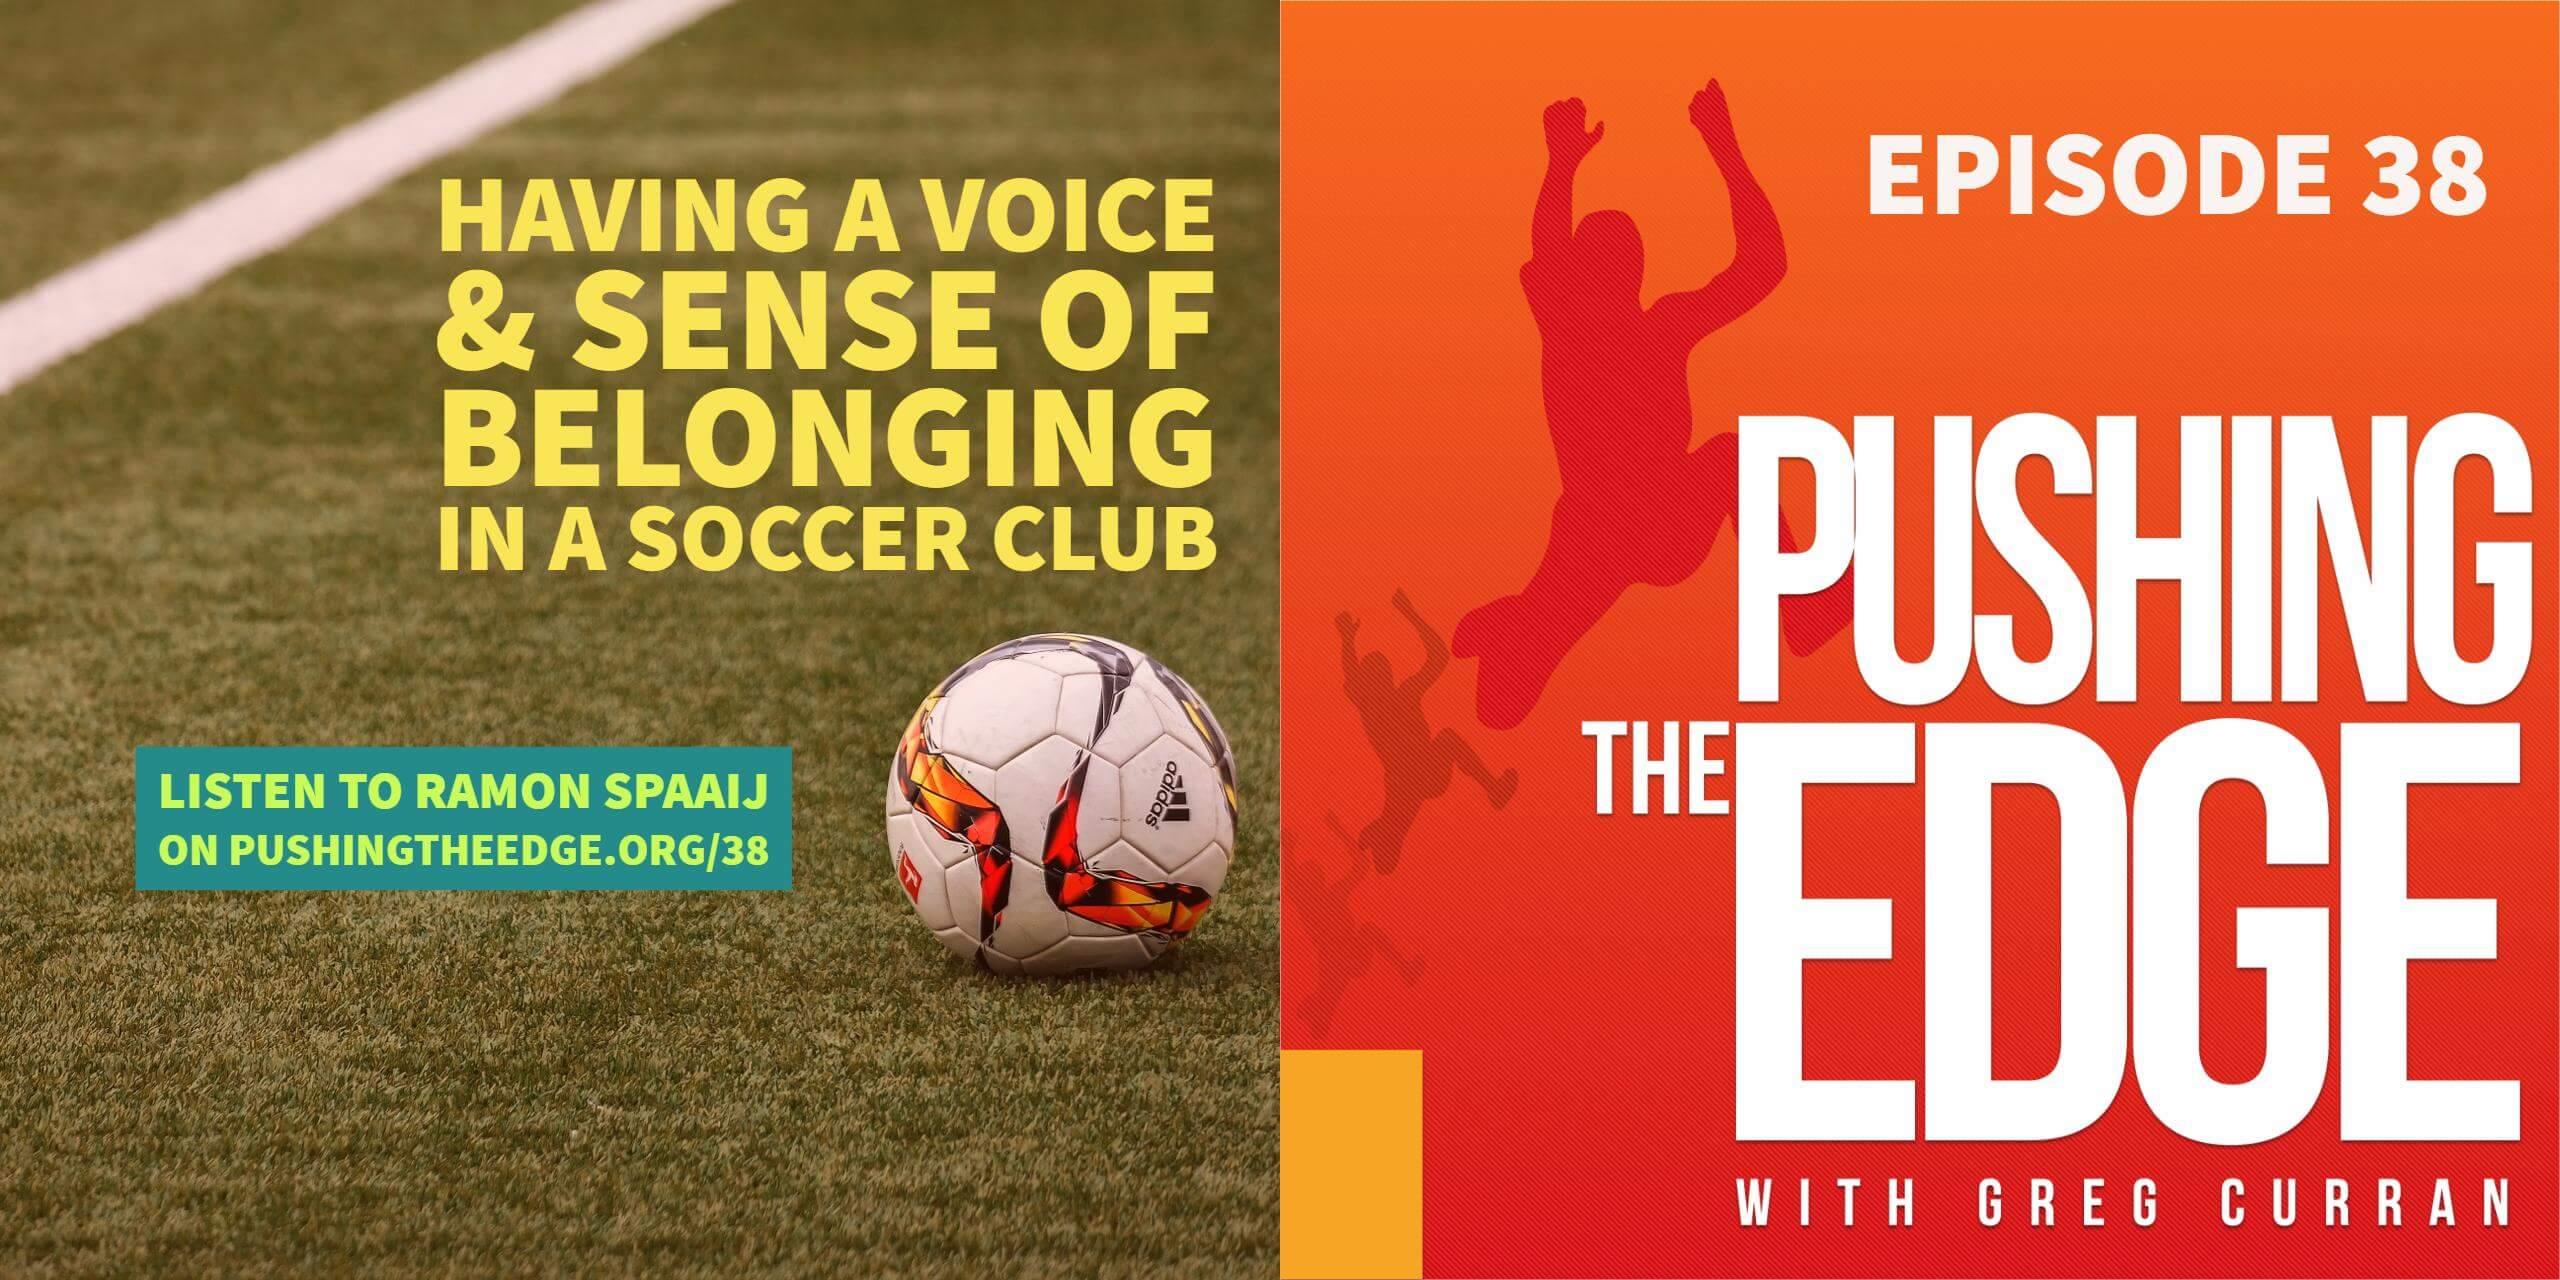 Image of soccer ball with the text - Having a voice and sense of belonging in a soccer club. Listen to Pushing The Edge dot org slash 38. Also image of Pushing The Edge icon.